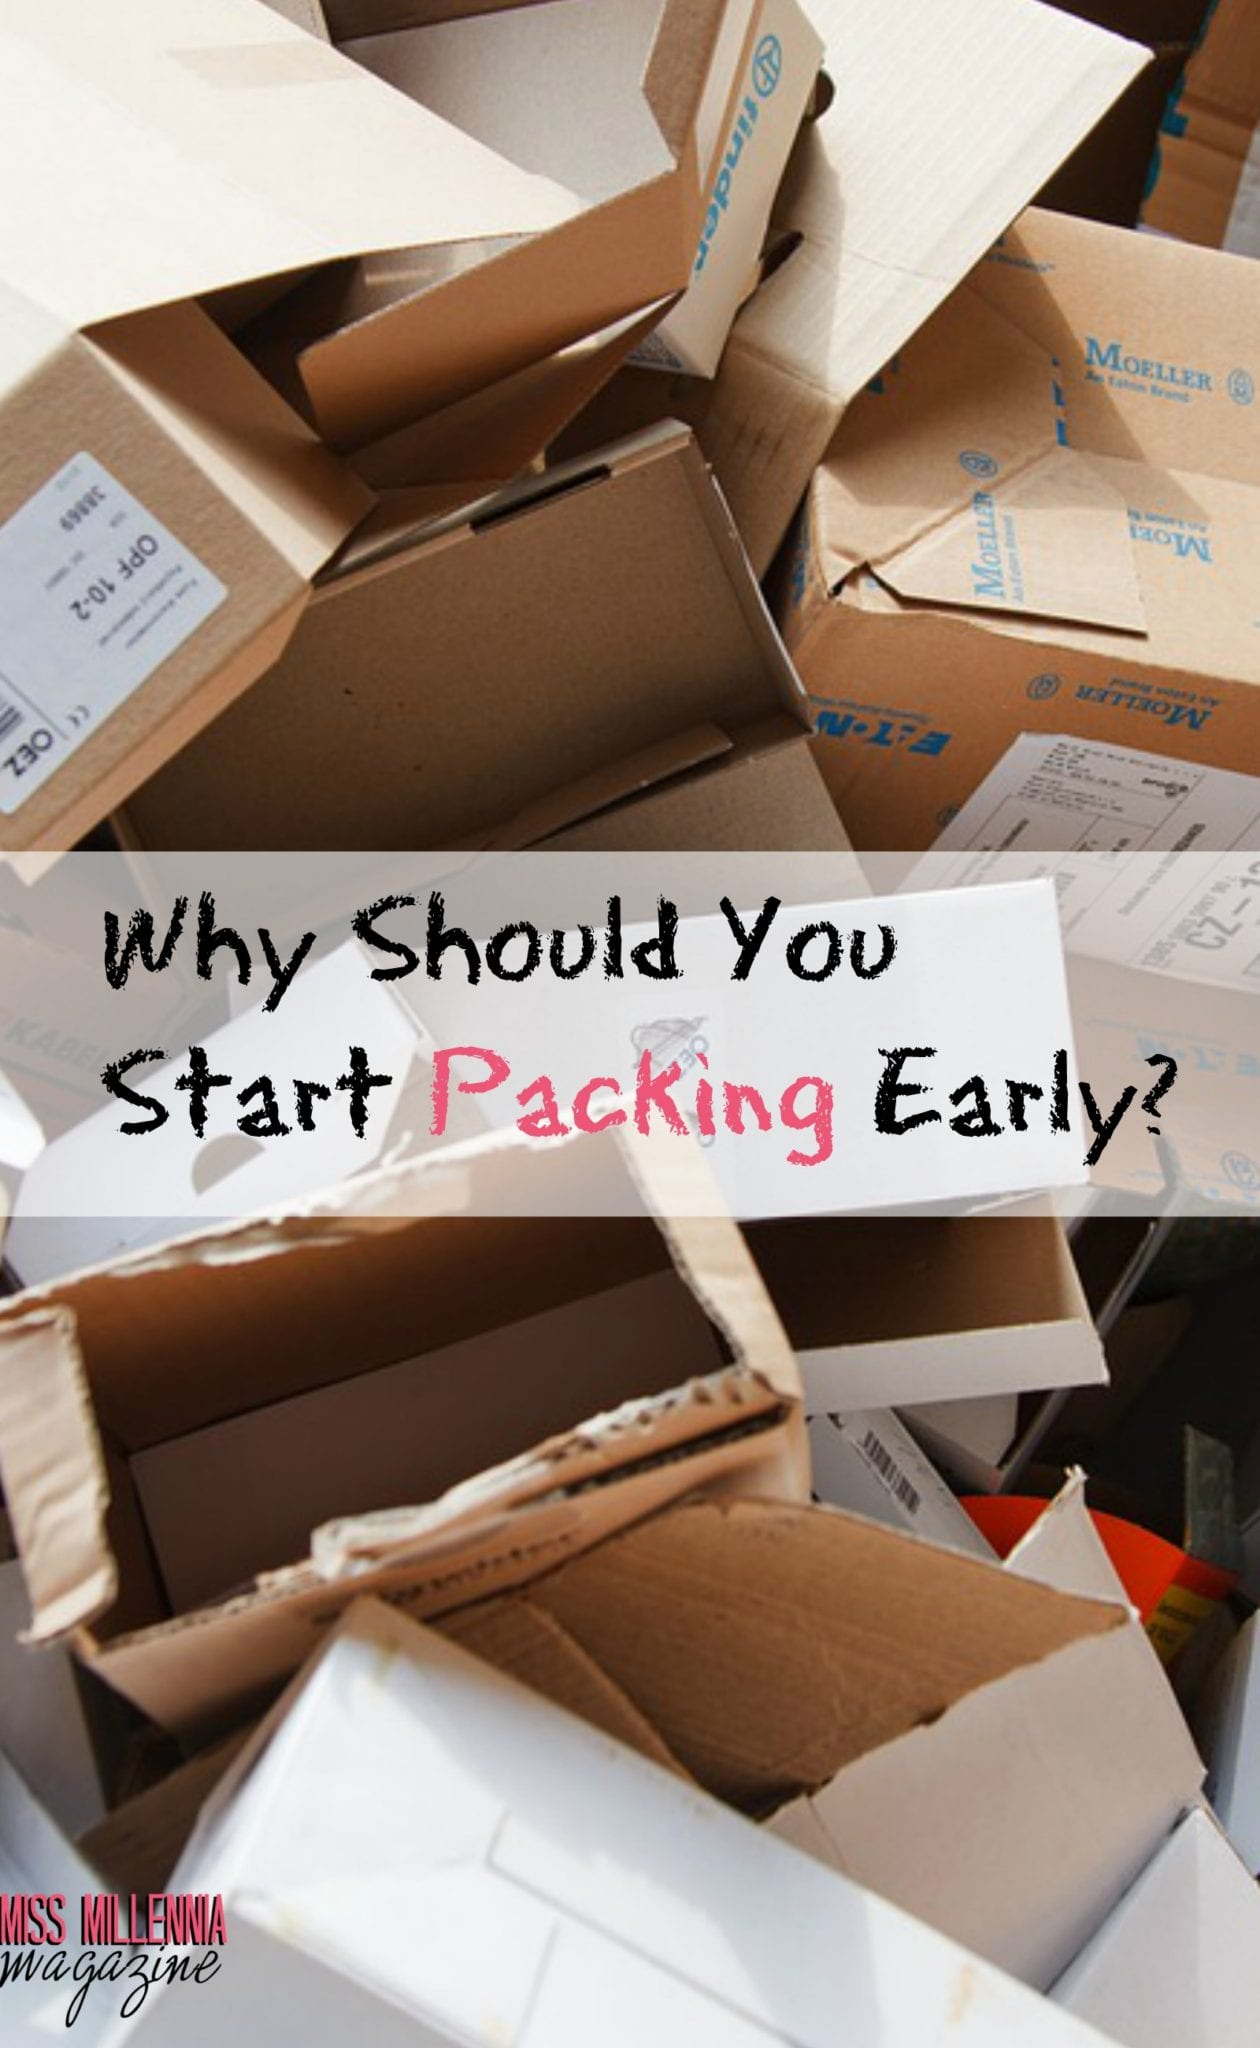 Why Should You Start Packing Early?